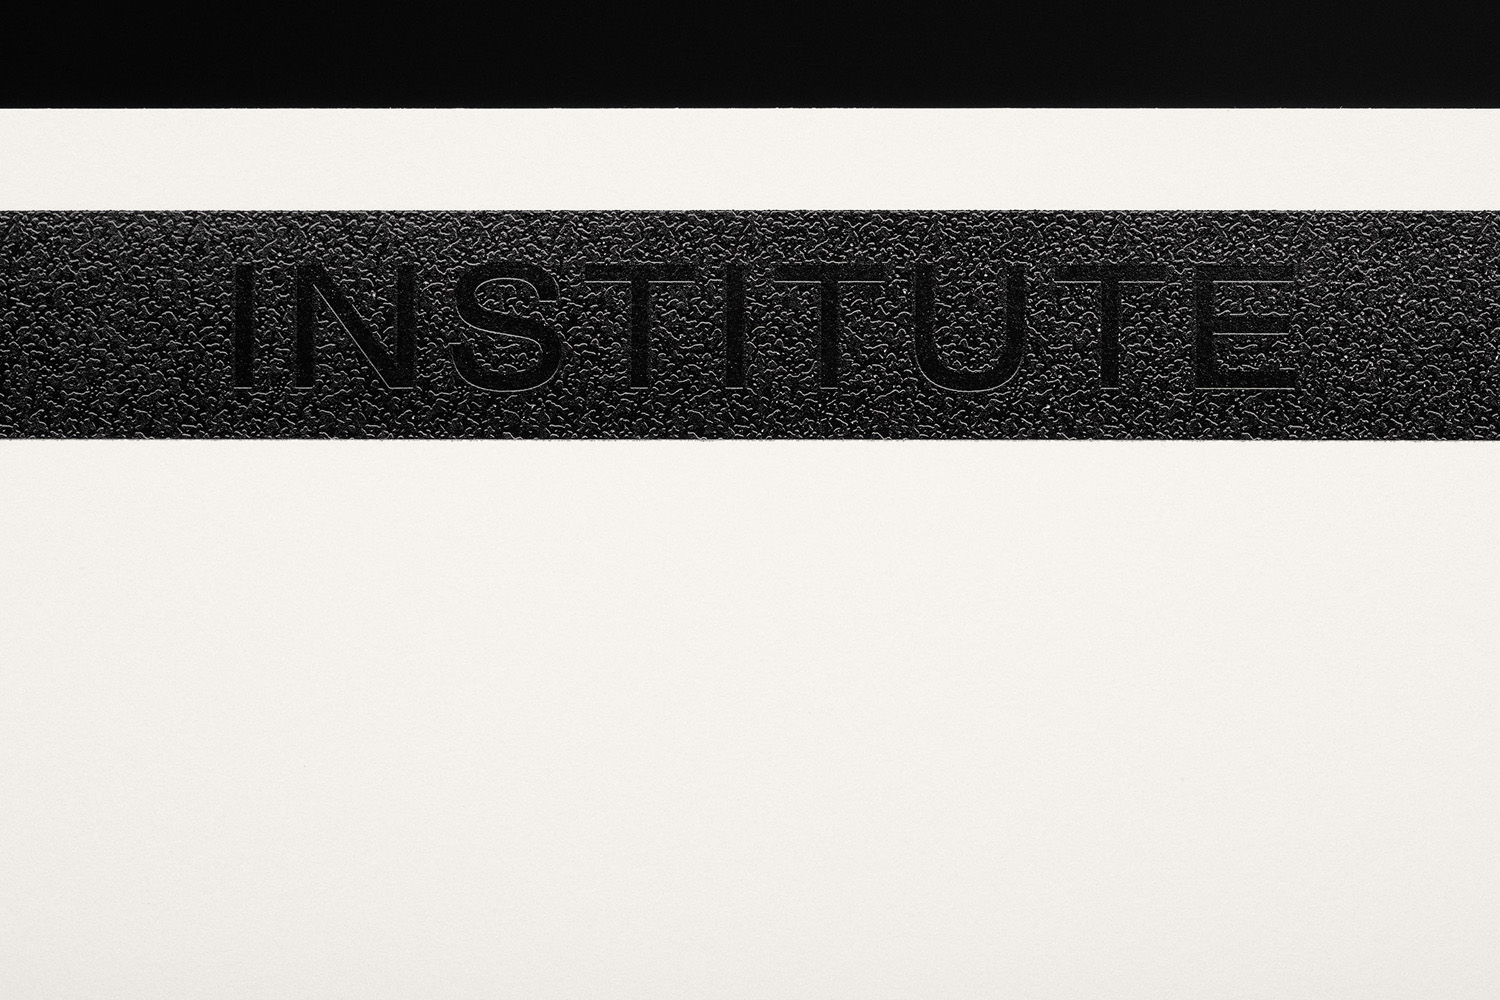 09-Institute-Branding-Design-Commission-Studio-London-UK-BPO-1